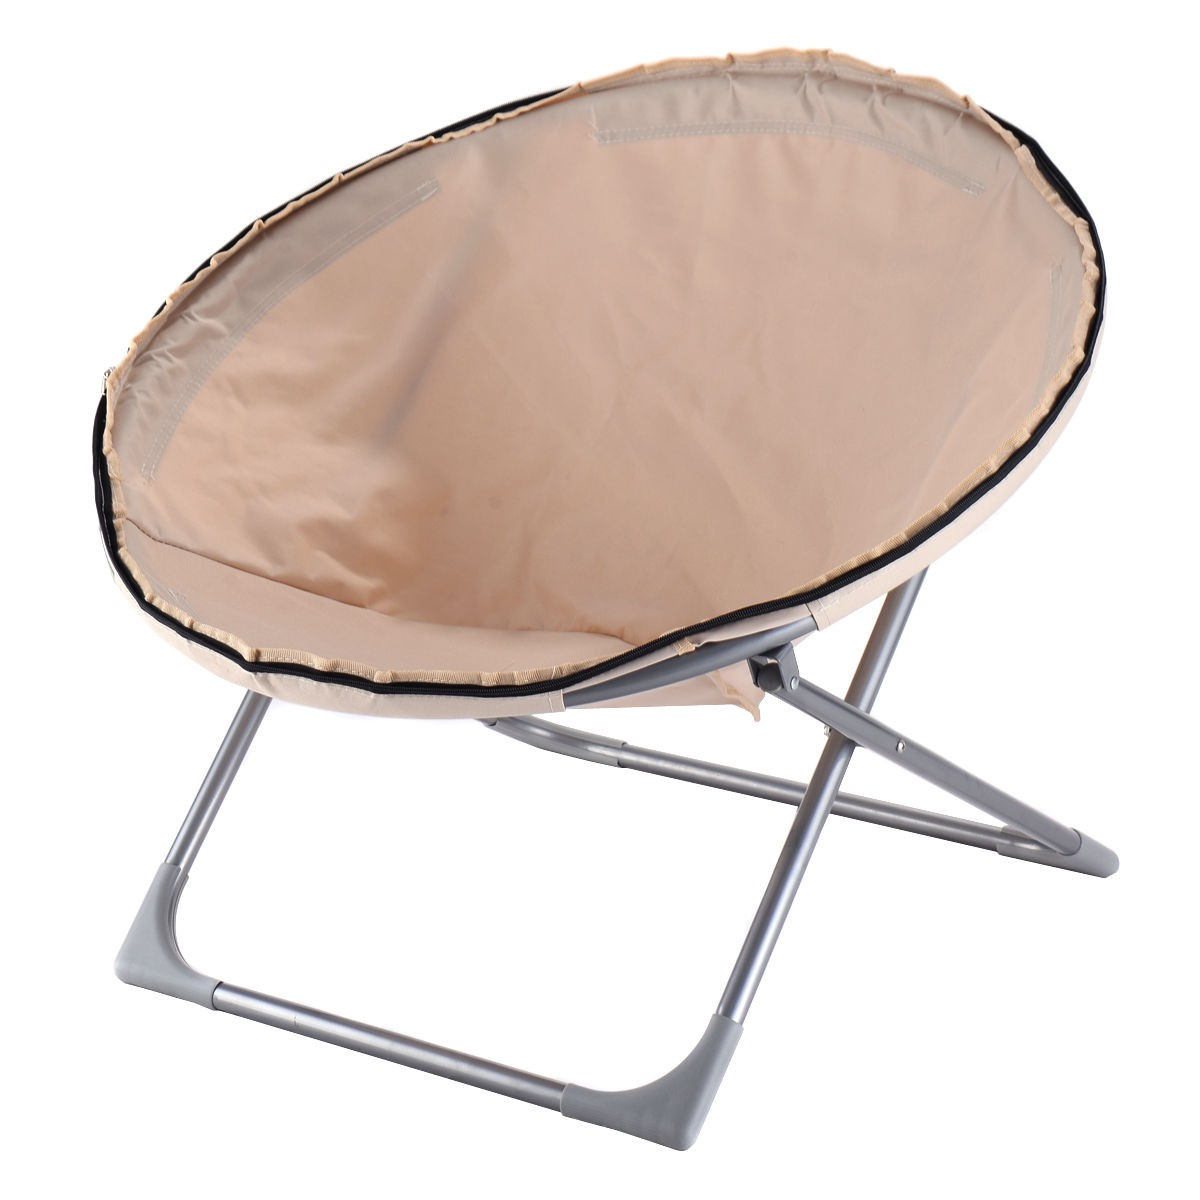 Oversized Large Folding Saucer Moon Chair Corduroy Round